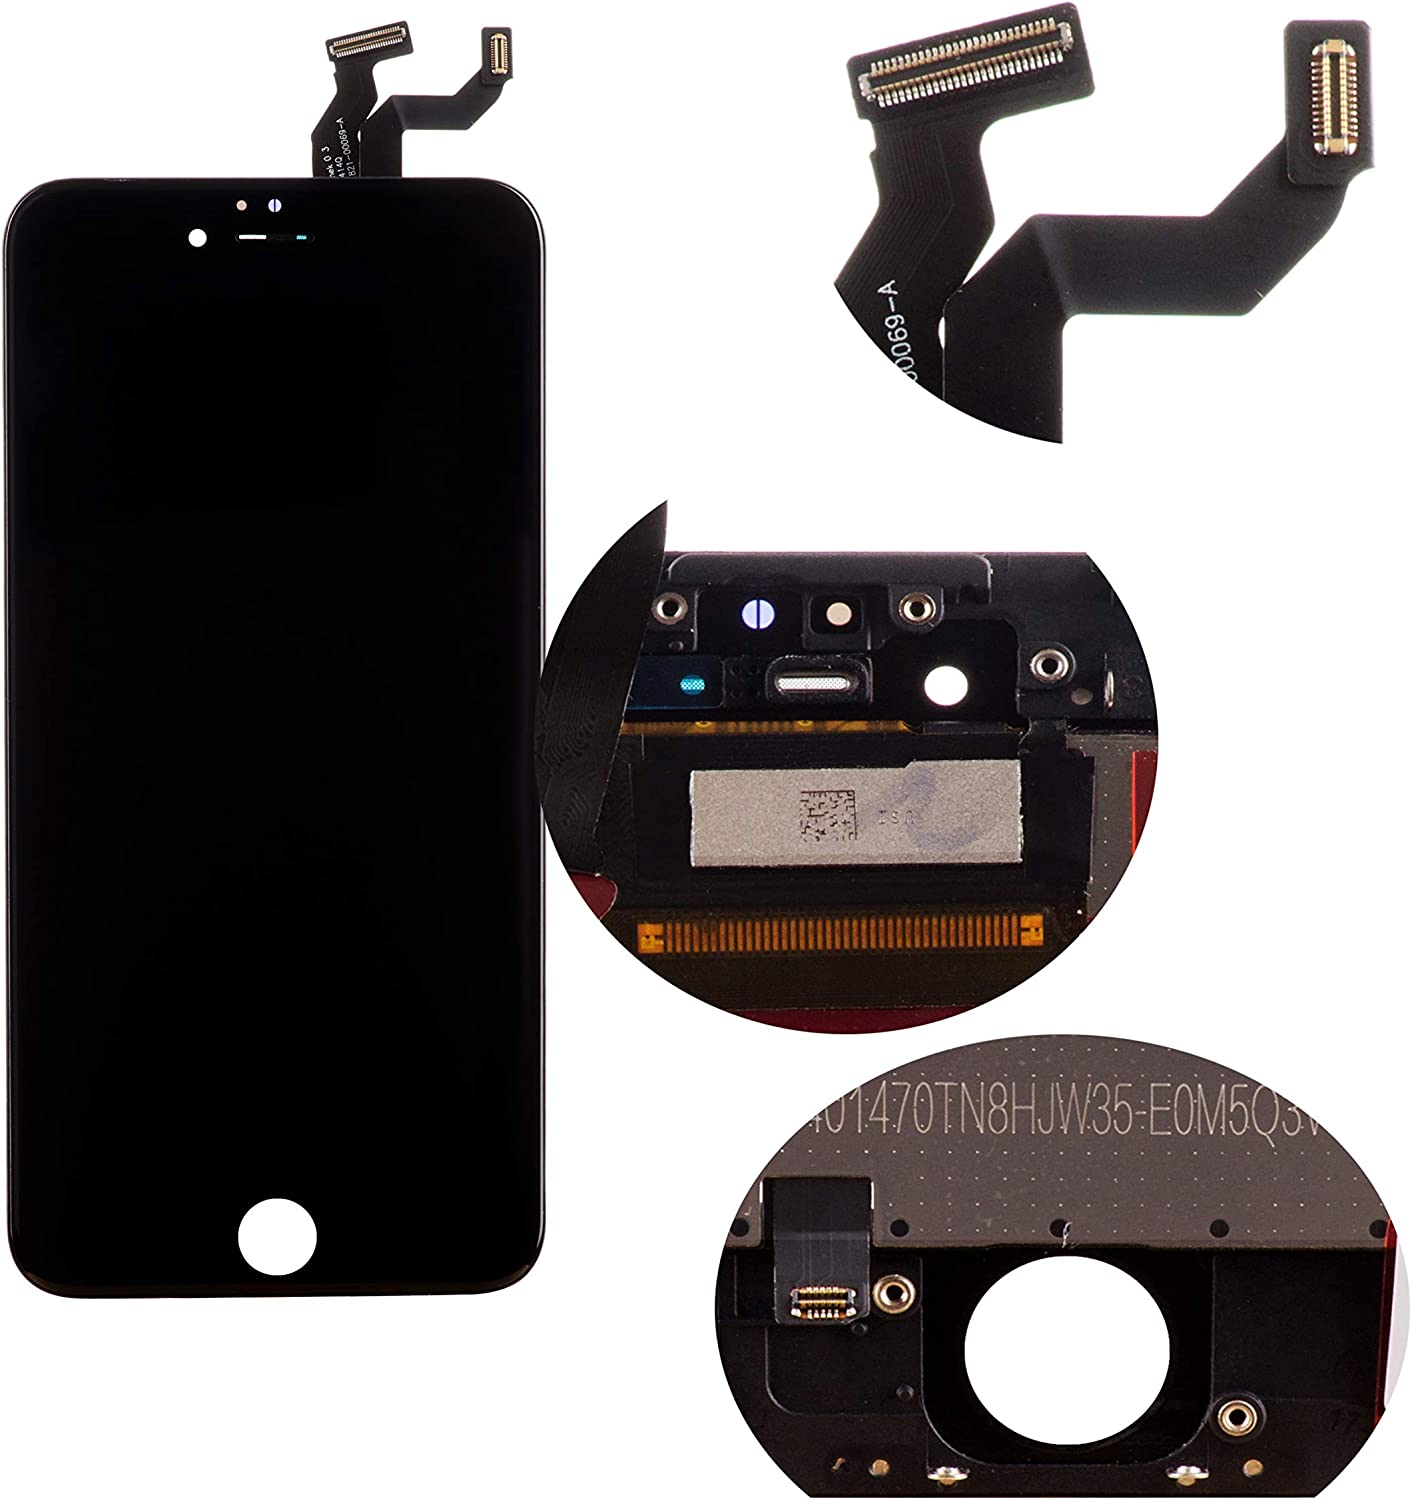 Front Glass LCD Screen Replacement Digitizer Assembly Frame Set Display Touchscreen for iPhone 6s Plus 5.5 Inch Black